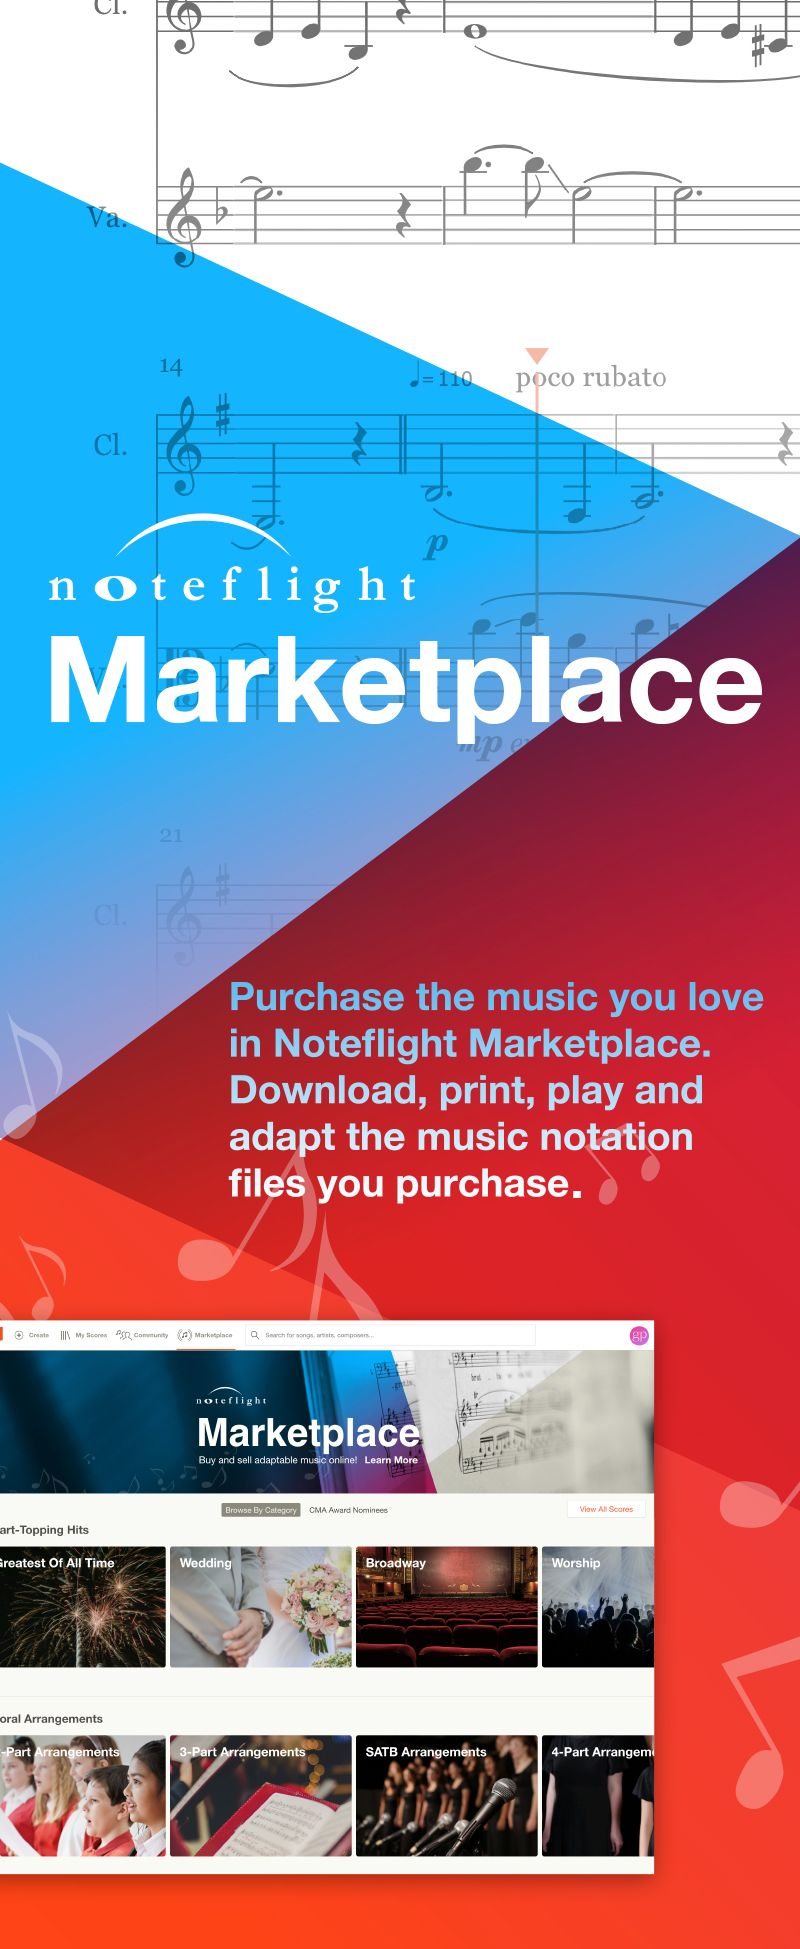 Purchase the sheet music you love in Noteflight Marketplace